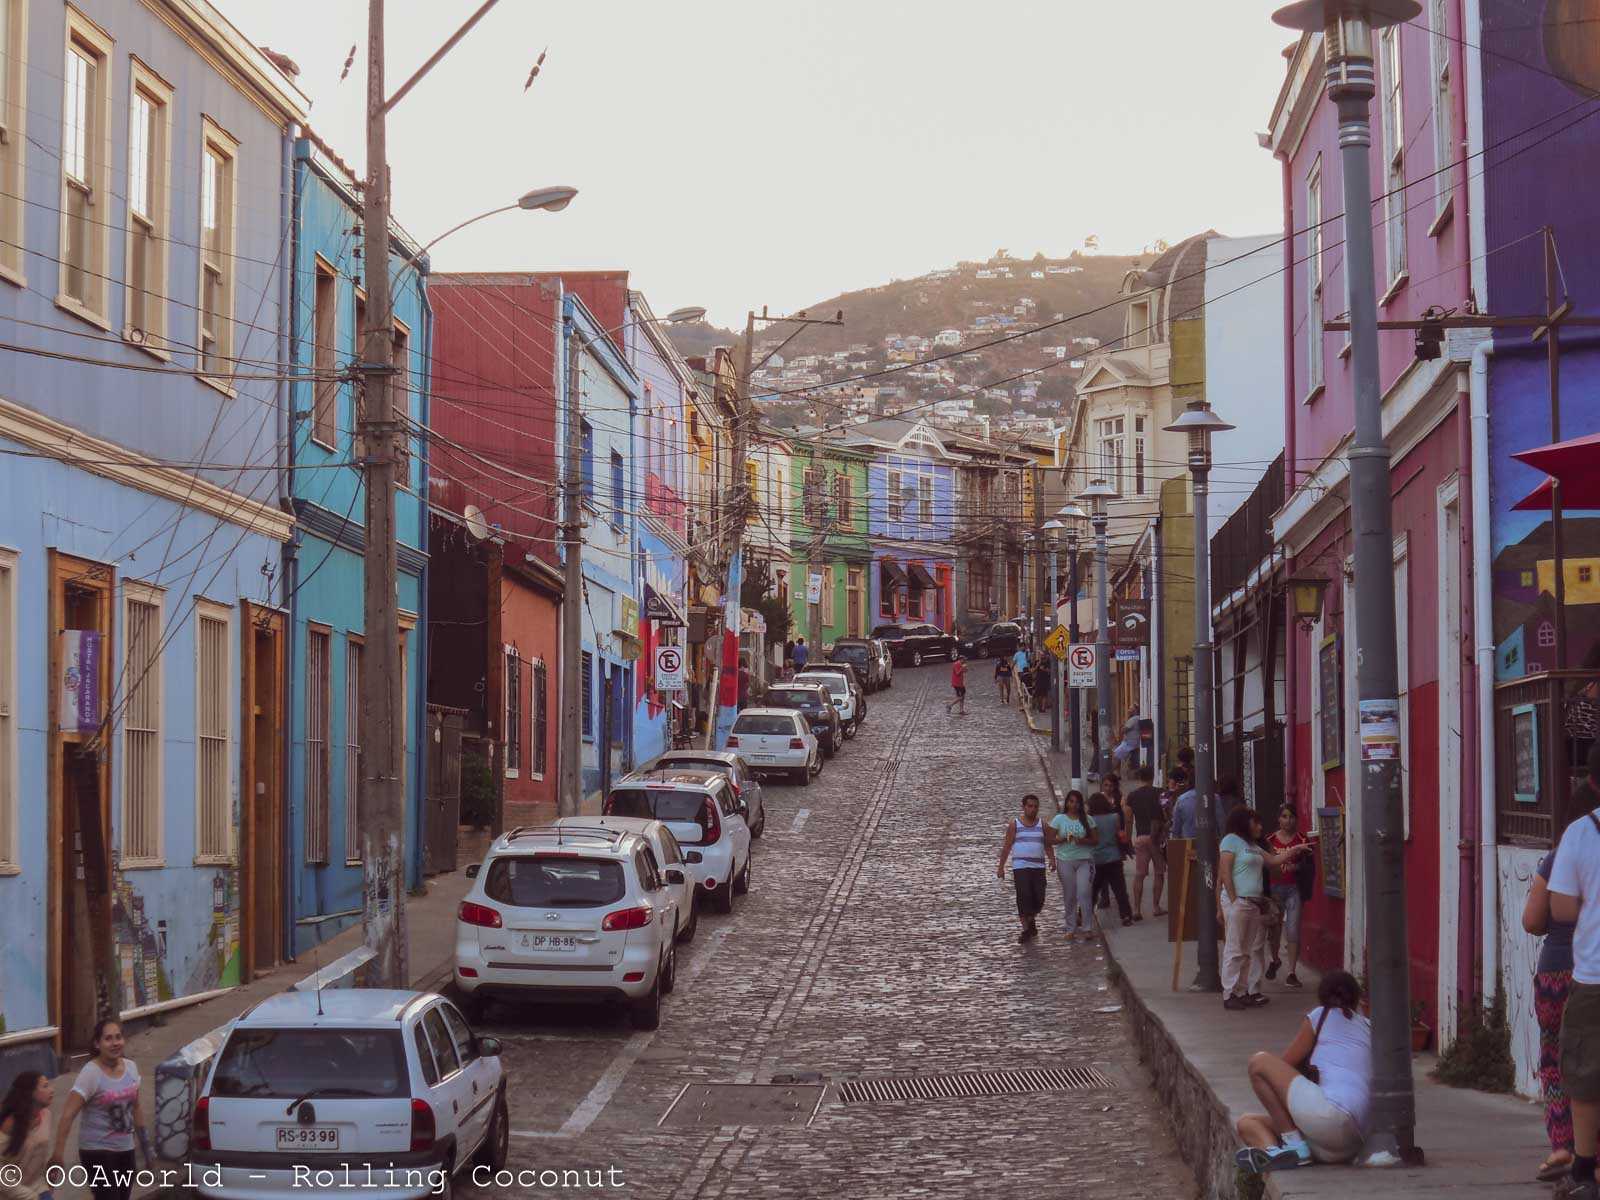 Hilly streets in Valparaiso, Chile - OOAworld Rolling Coconut Photo